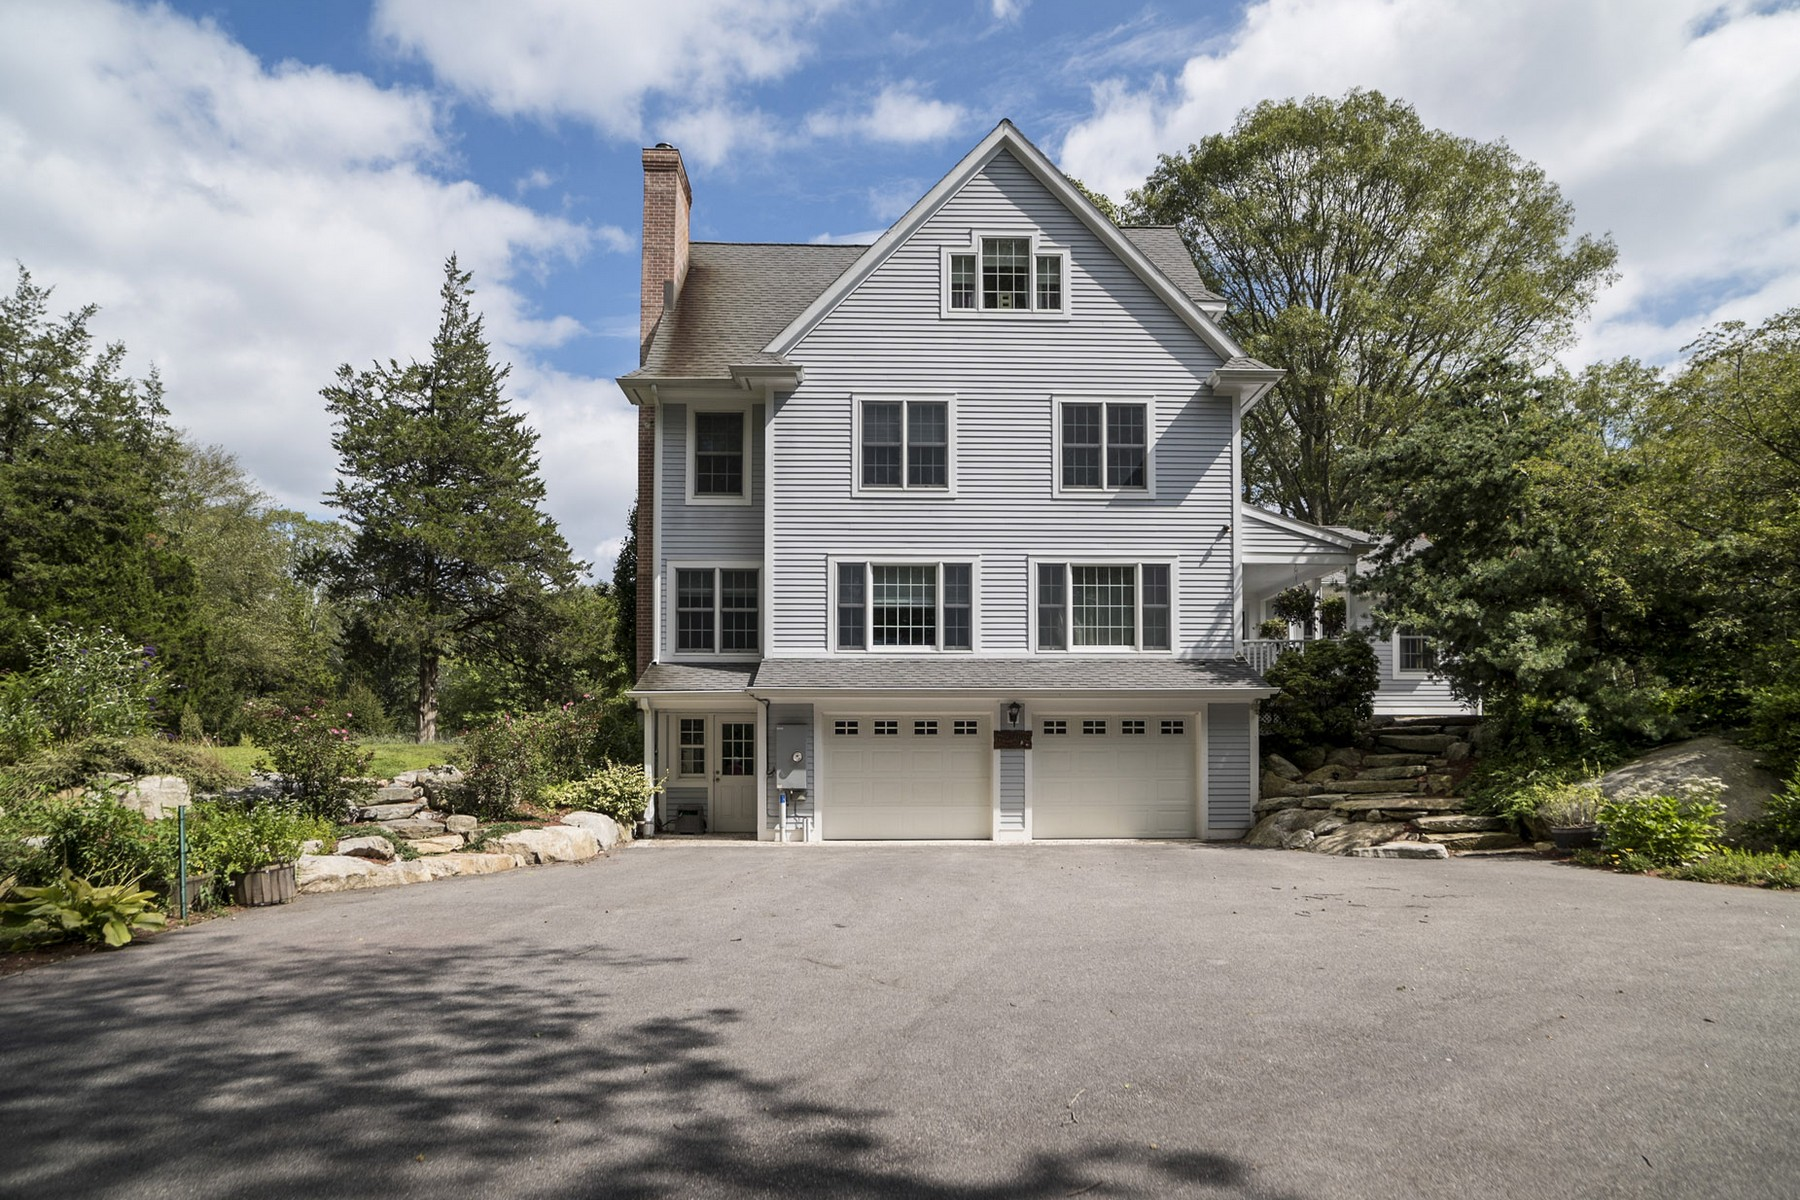 Additional photo for property listing at Unique And Open Floor Plan 116 Farmholme Rd Stonington, Connecticut 06378 United States